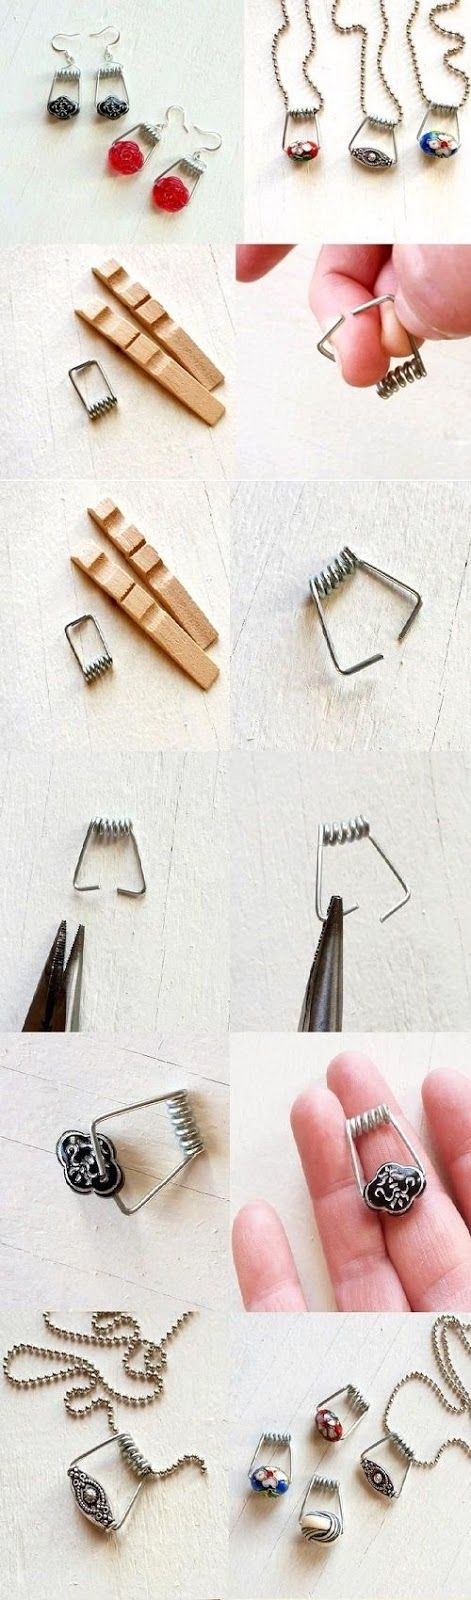 jewellery designer rom the mechanism of clothespins